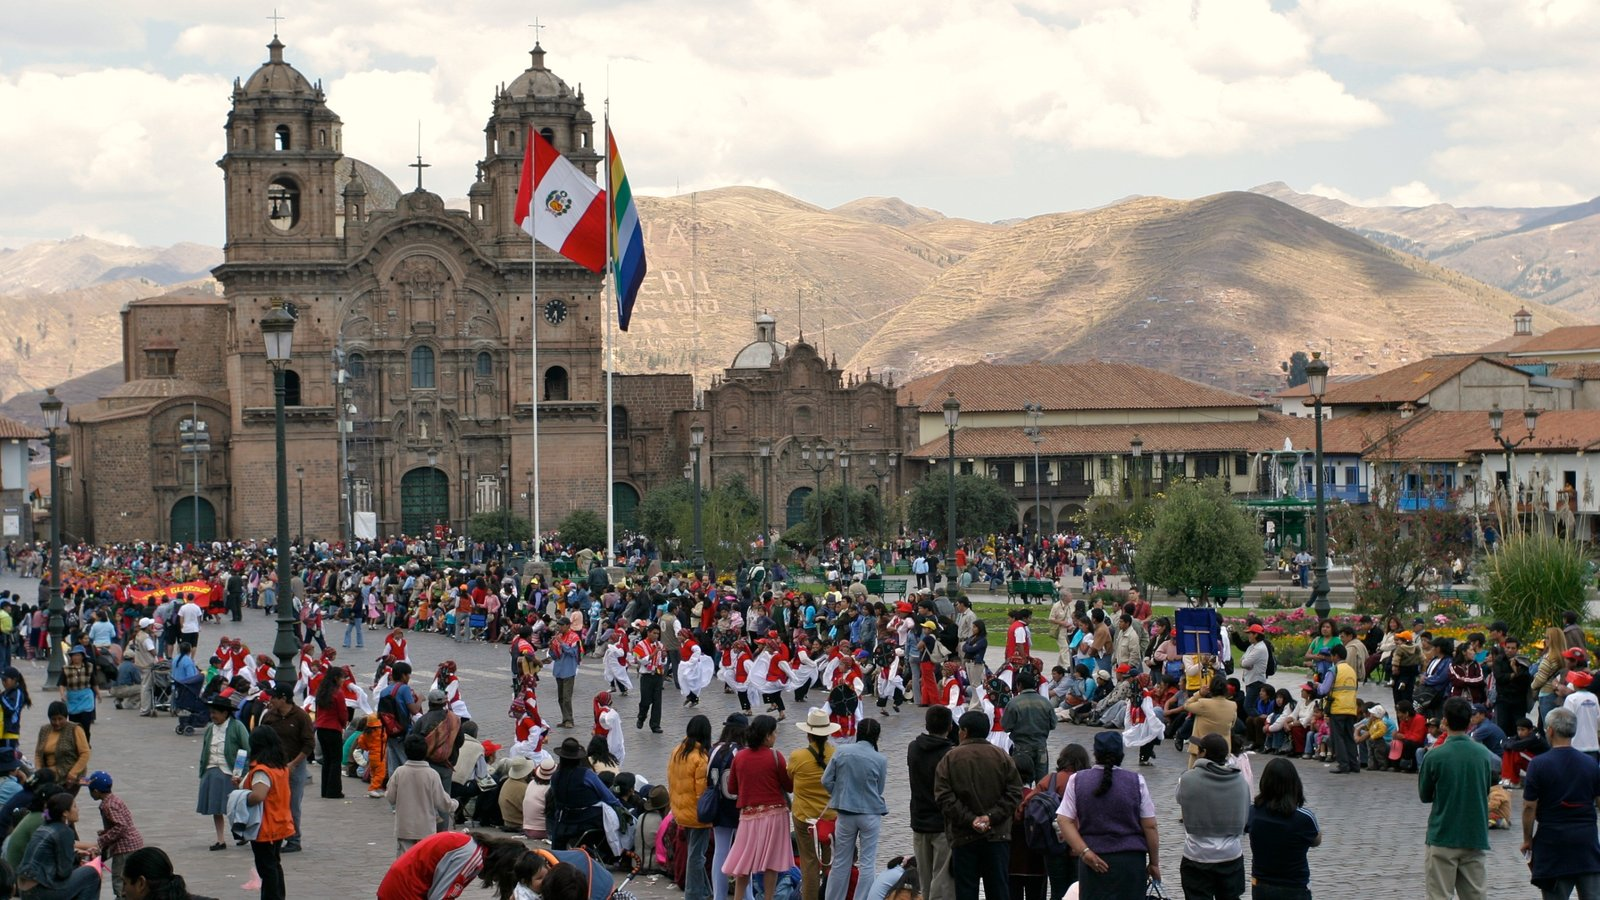 Cusco which includes a church or cathedral and heritage architecture as well as a large group of people